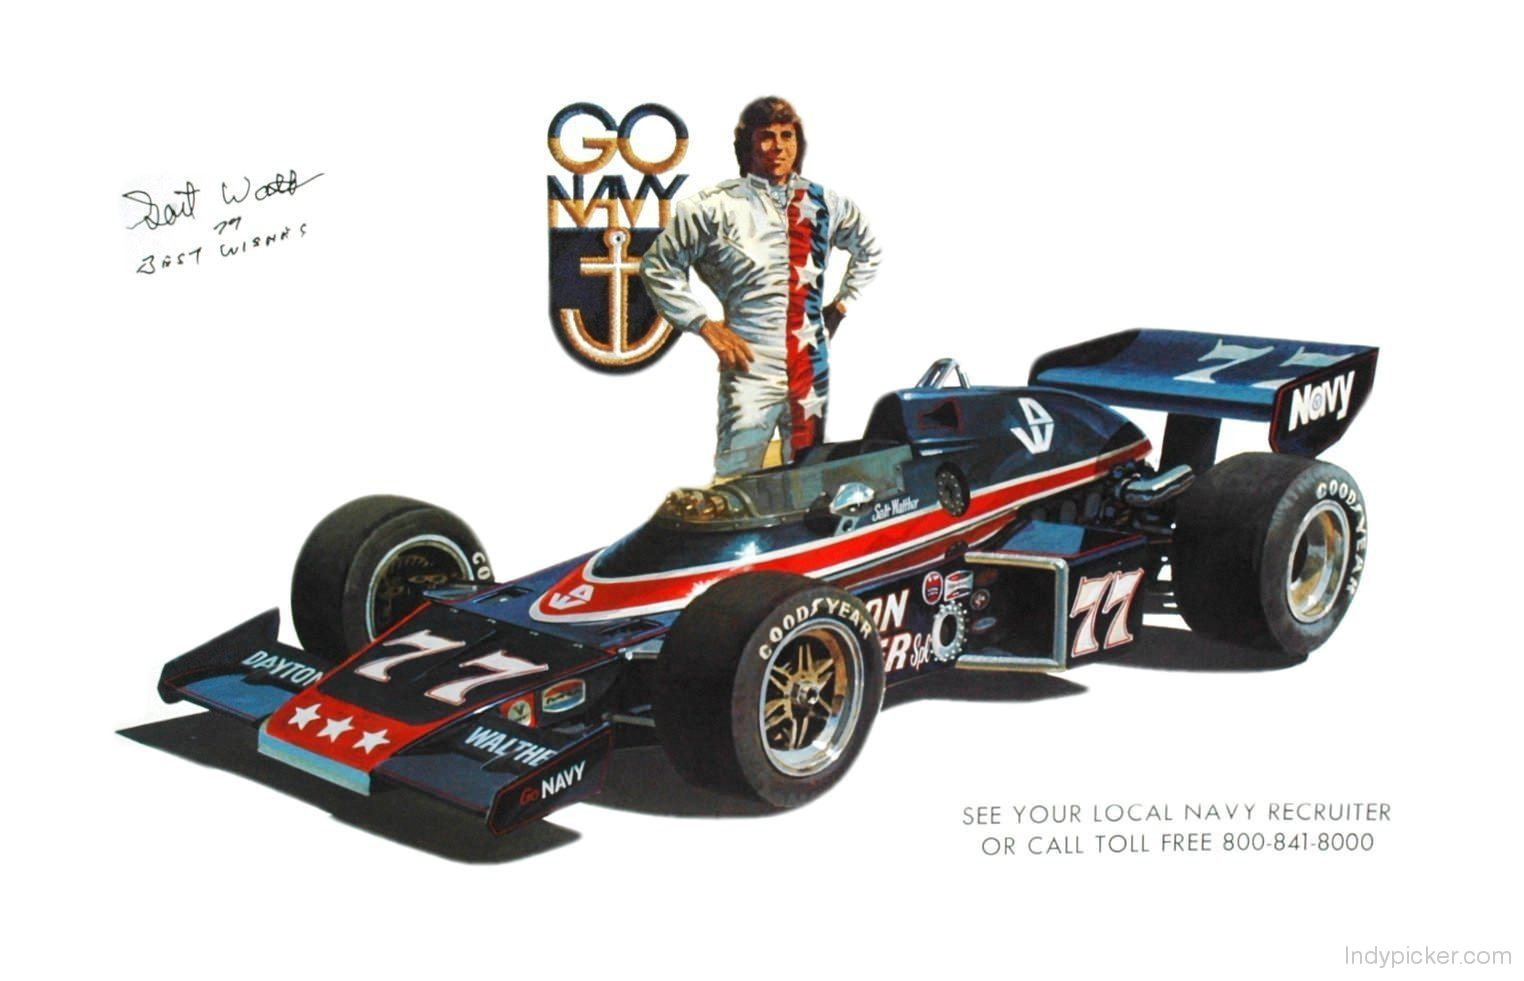 Vintage Salt Walther Poster 1975 Indy 500 Racing Autographed